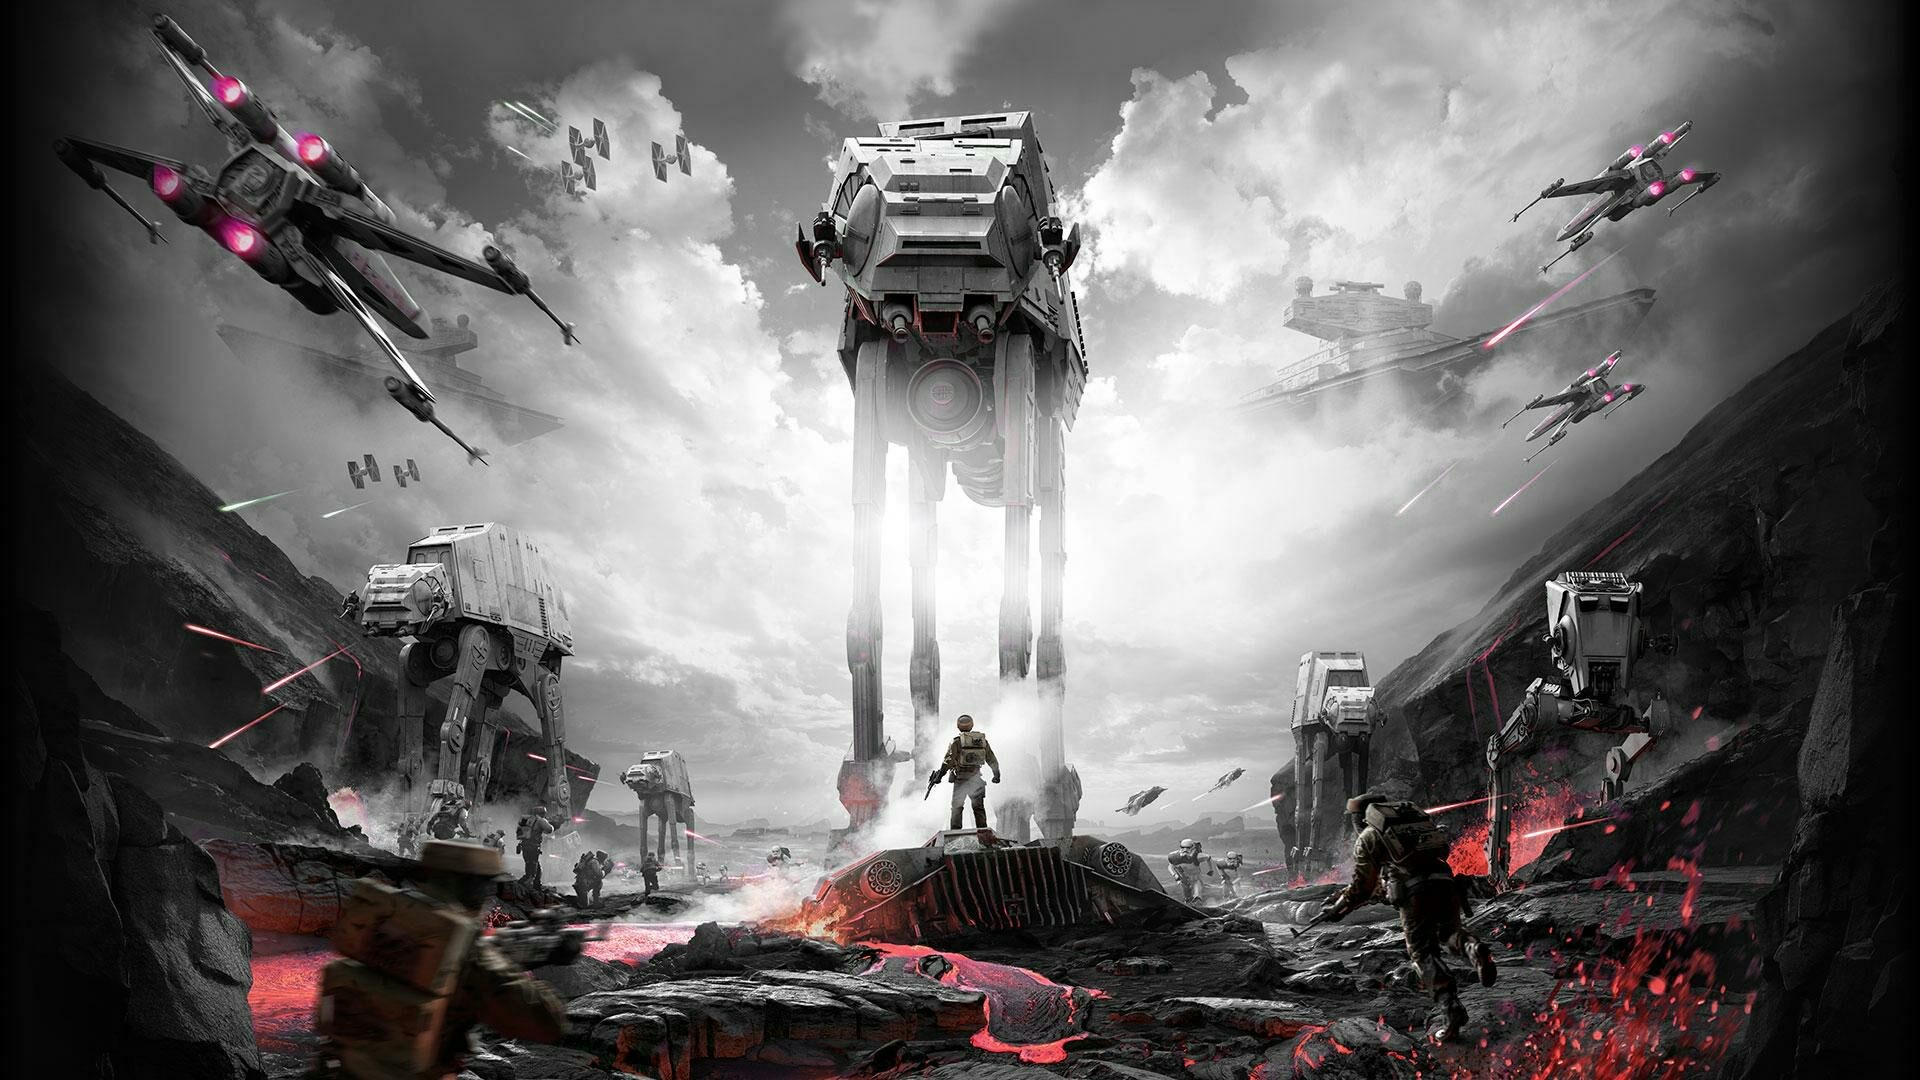 Cool Star Wars Backgrounds 1